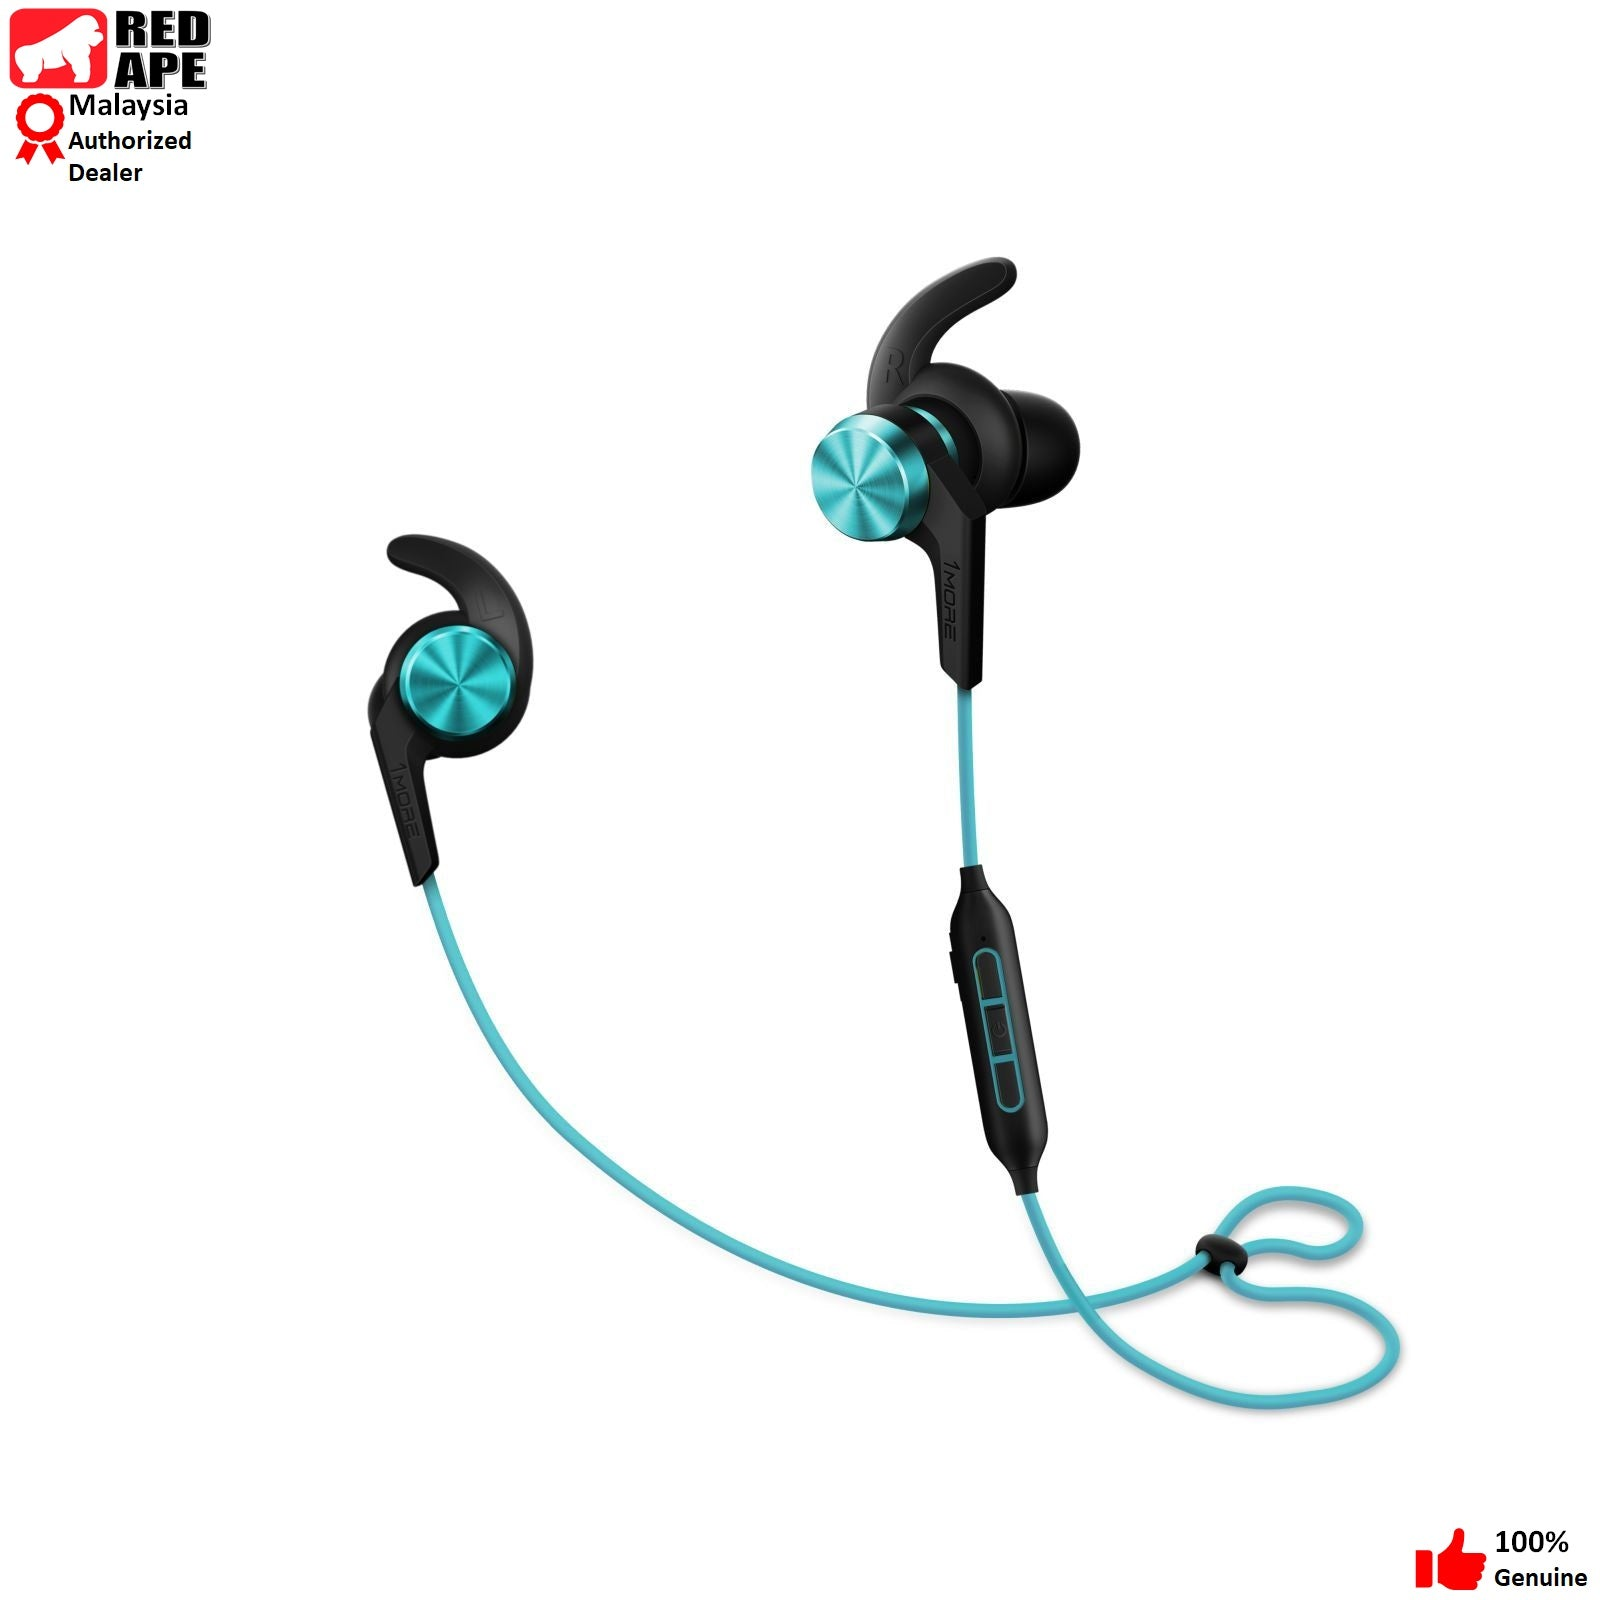 1MORE Bluetooth (Wireless) Sport In Ear Headphones (Earphones, Earbuds) with Microphone - 2018 iBFree, New Model